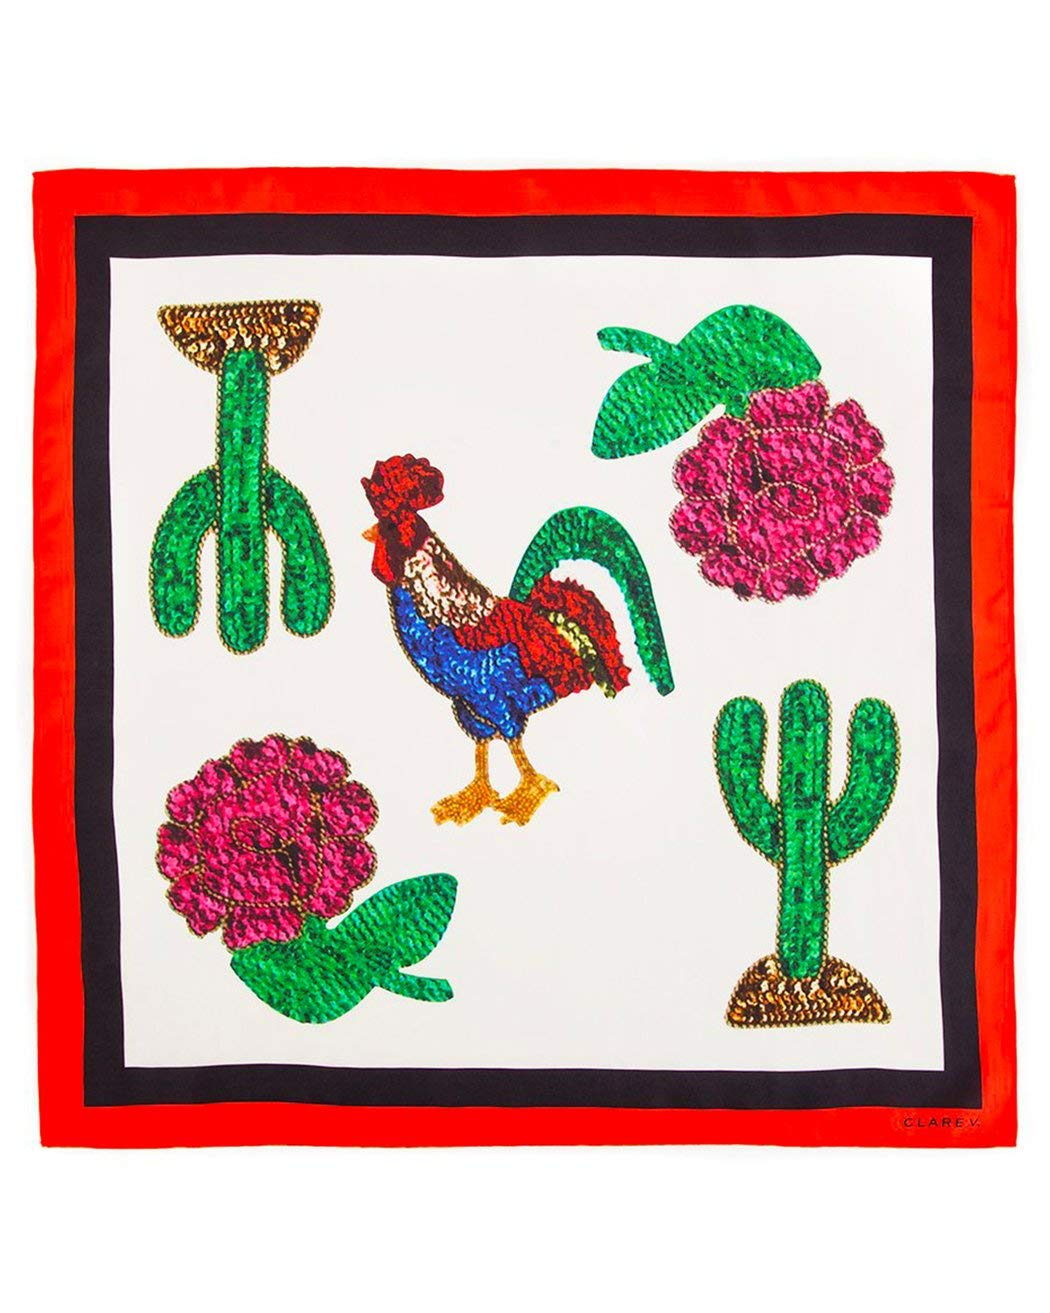 Clarev V. Rooster Print Silk Scarf, White by Unknown